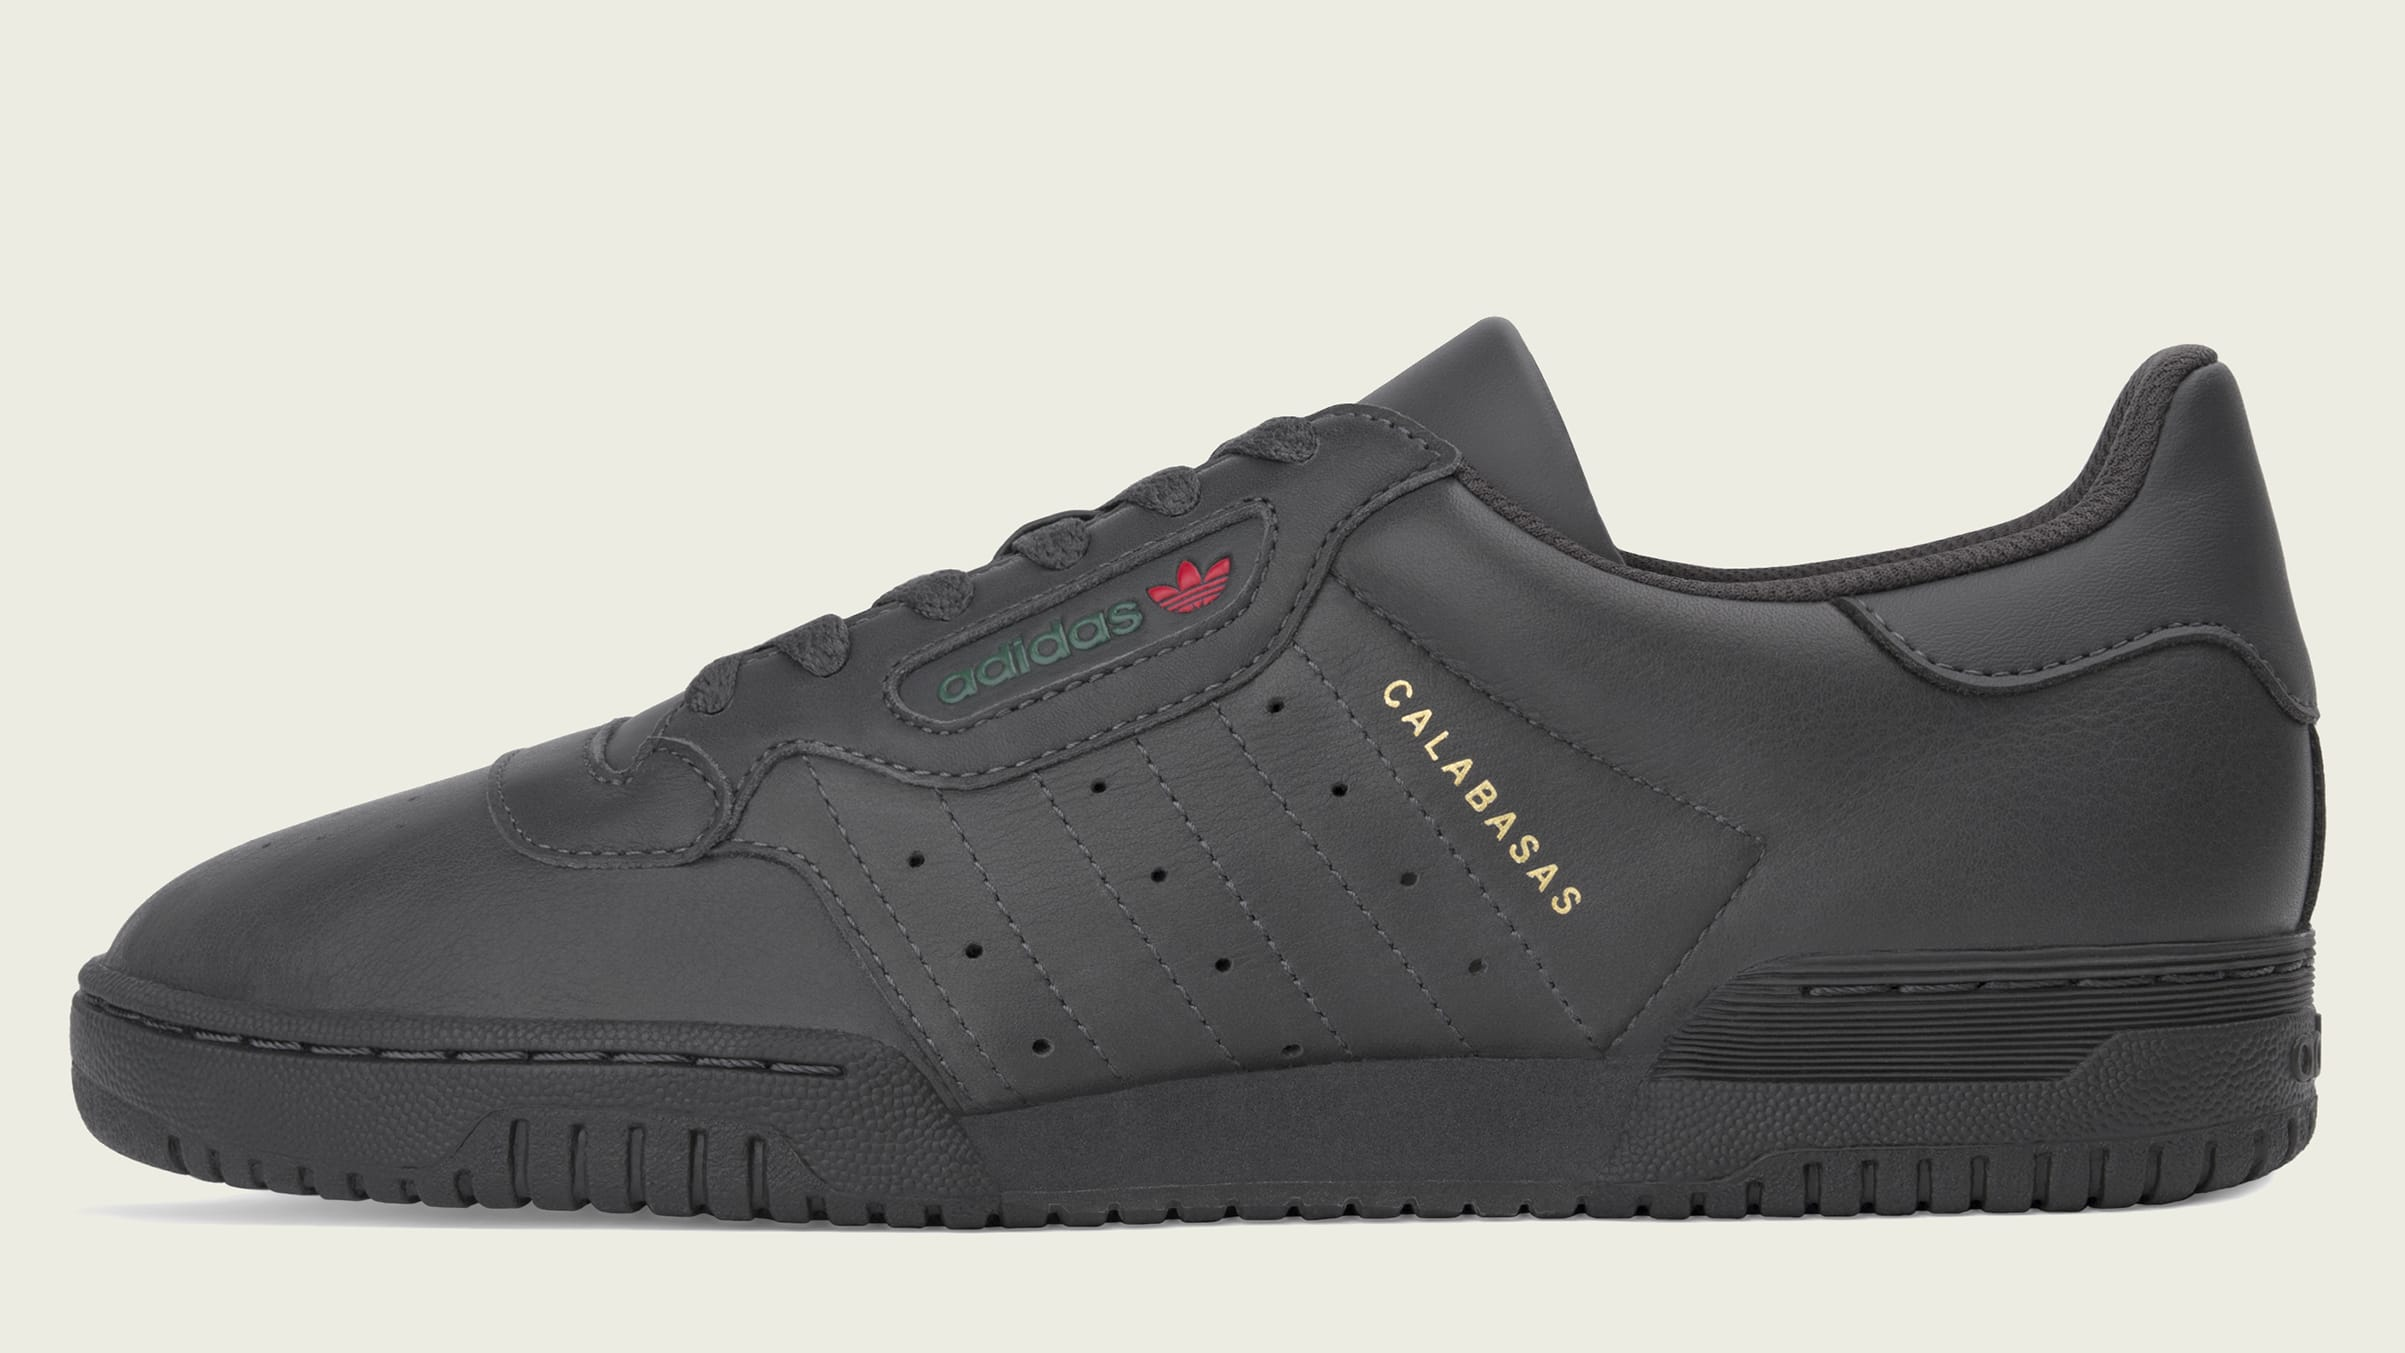 Adidas Yeezy Powerphase 'Core Black' CG6420 (Left)